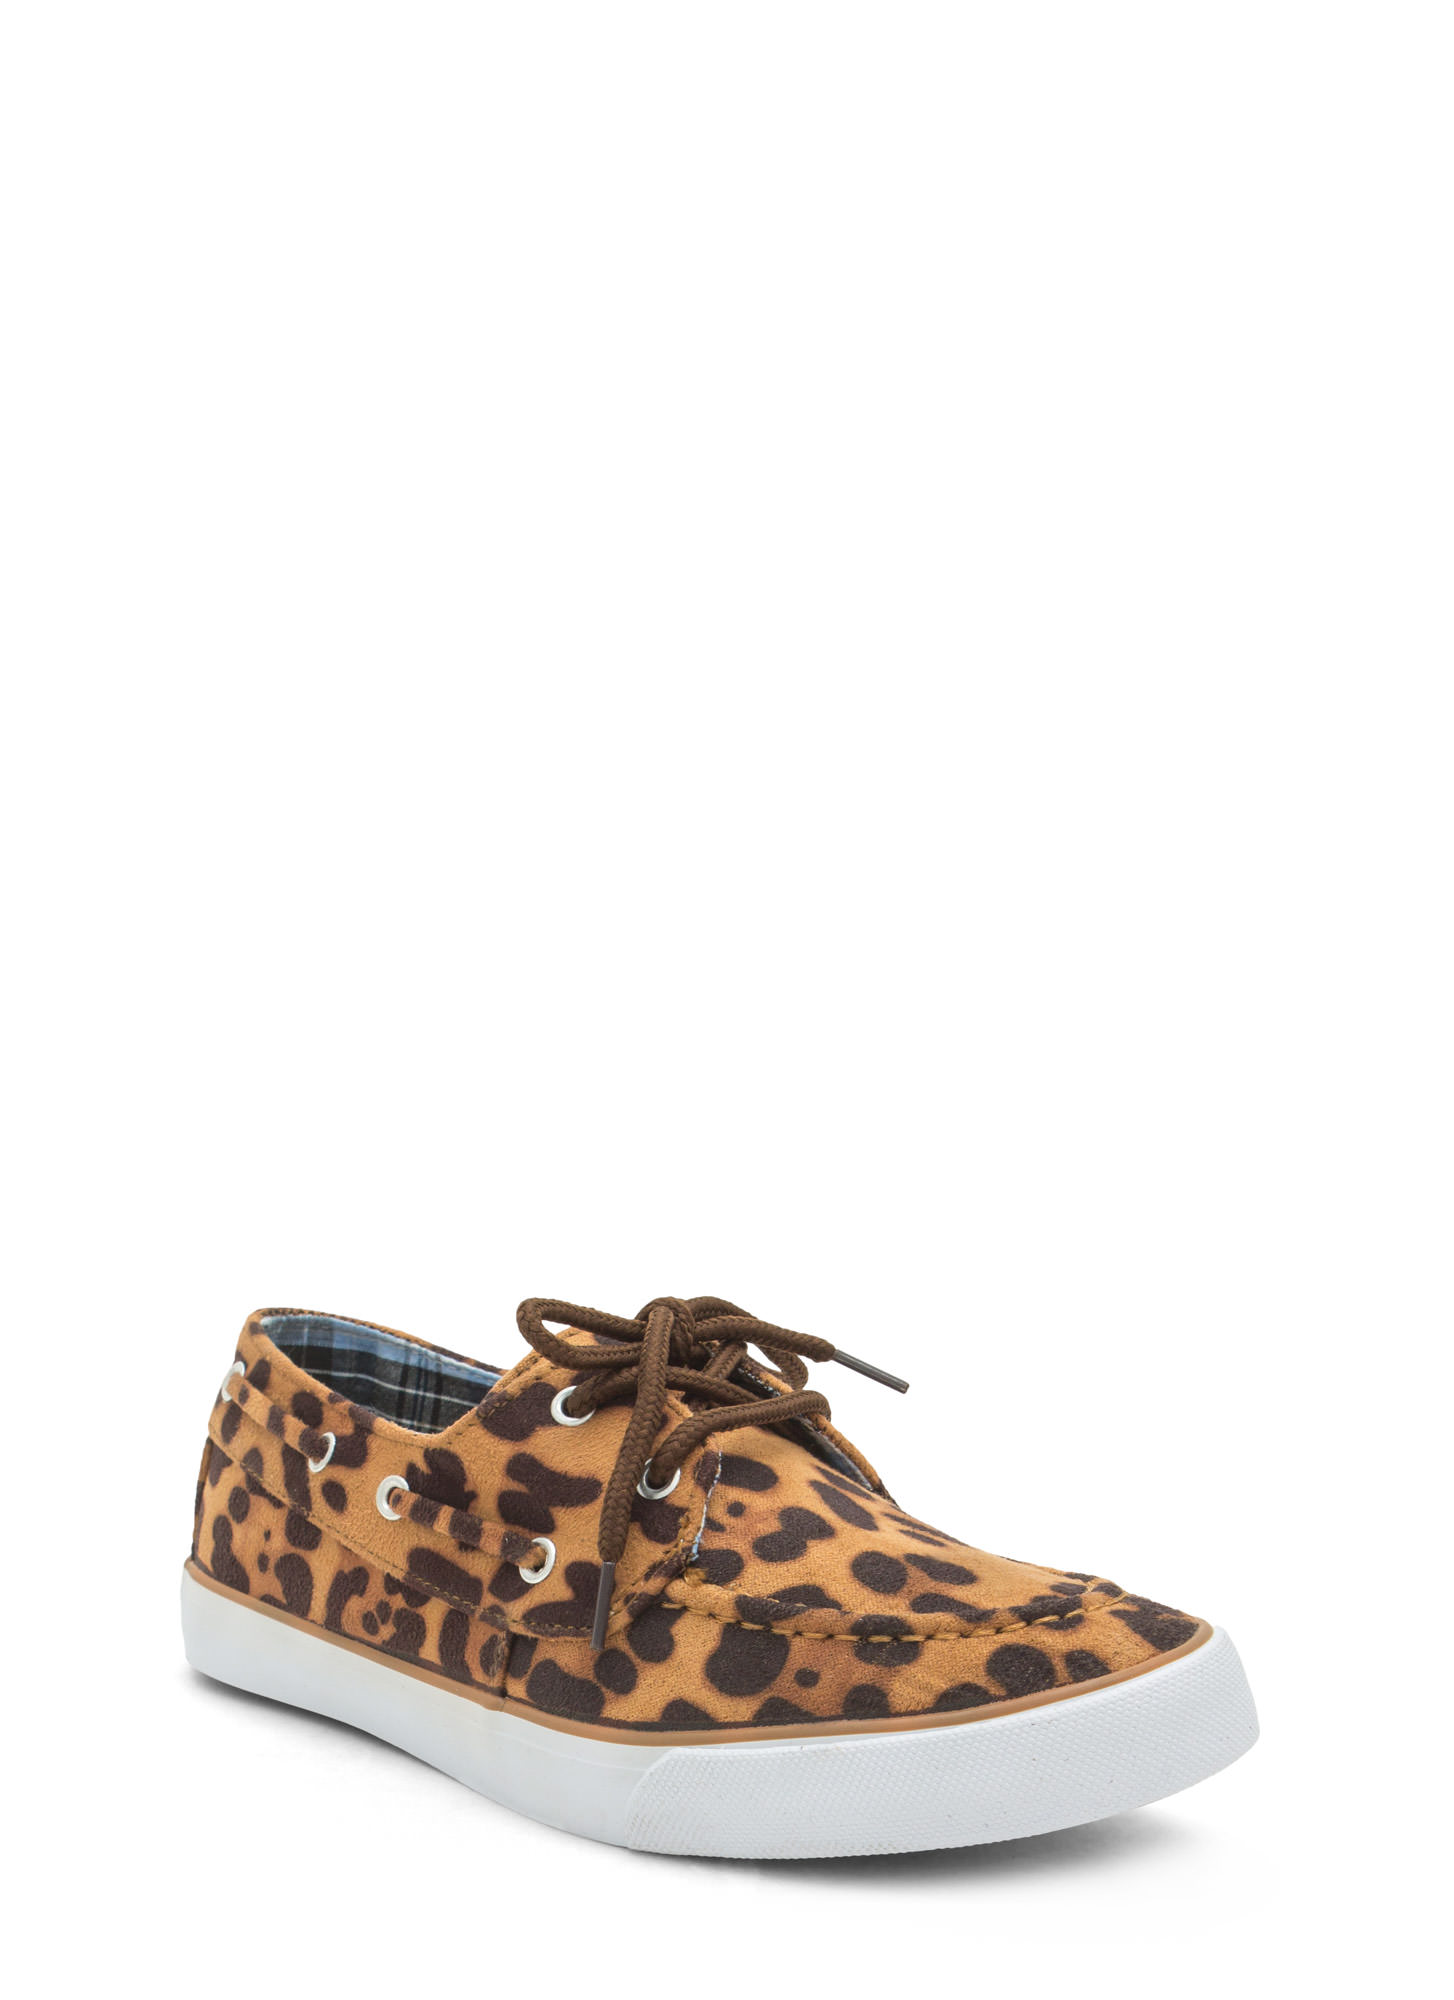 On A Boat Lace-Up Sneakers LEOPARD